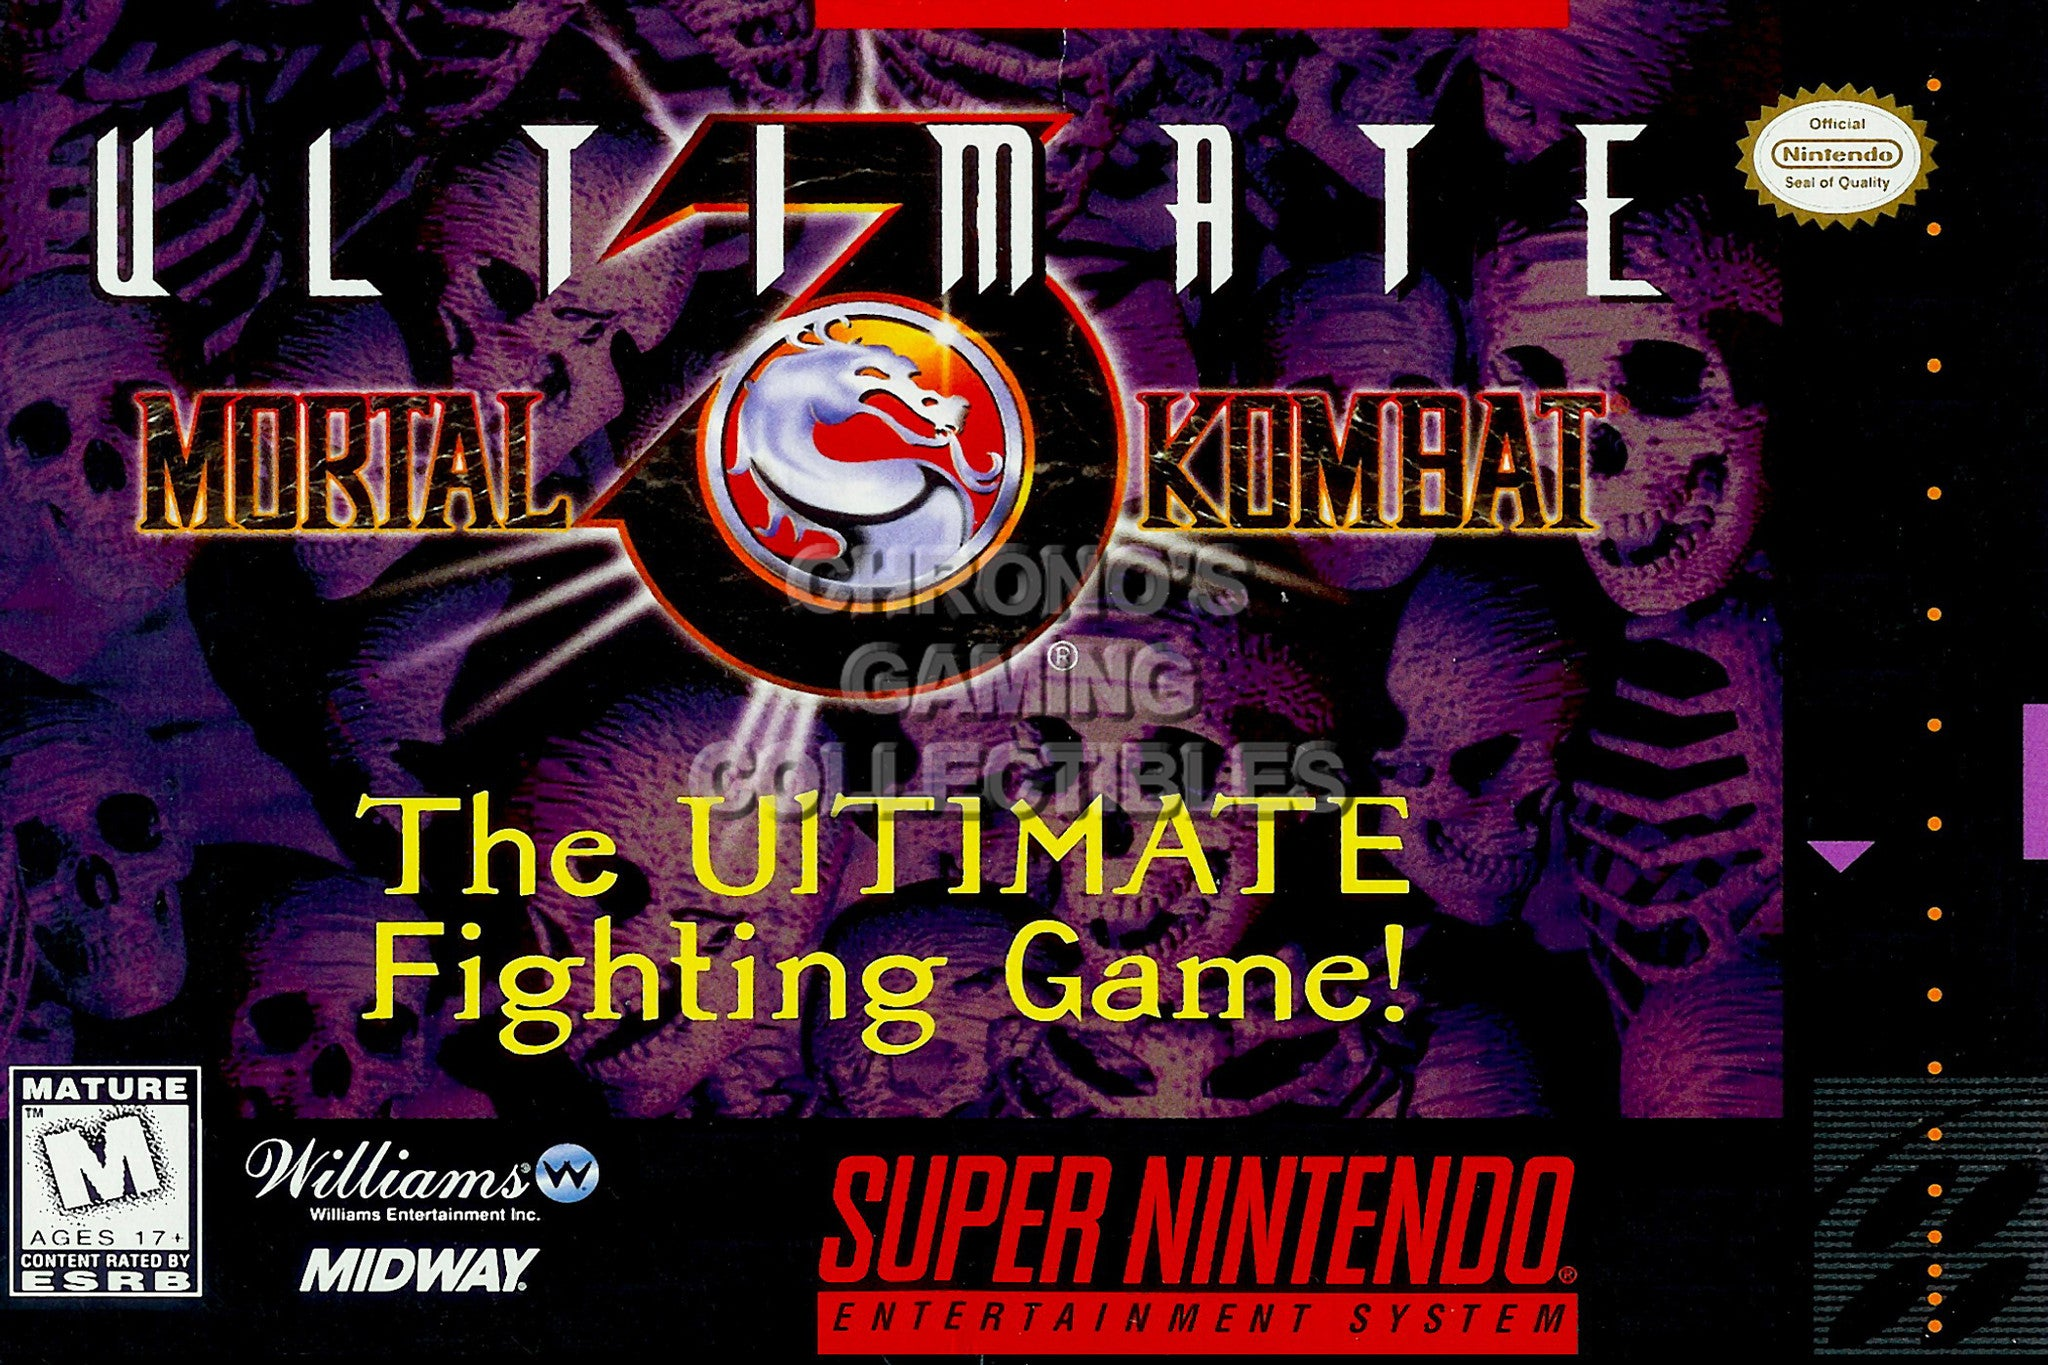 CGC Huge Poster - Ultimate Mortal Kombat III Super Nintendo SNES Box Art -  SNES24